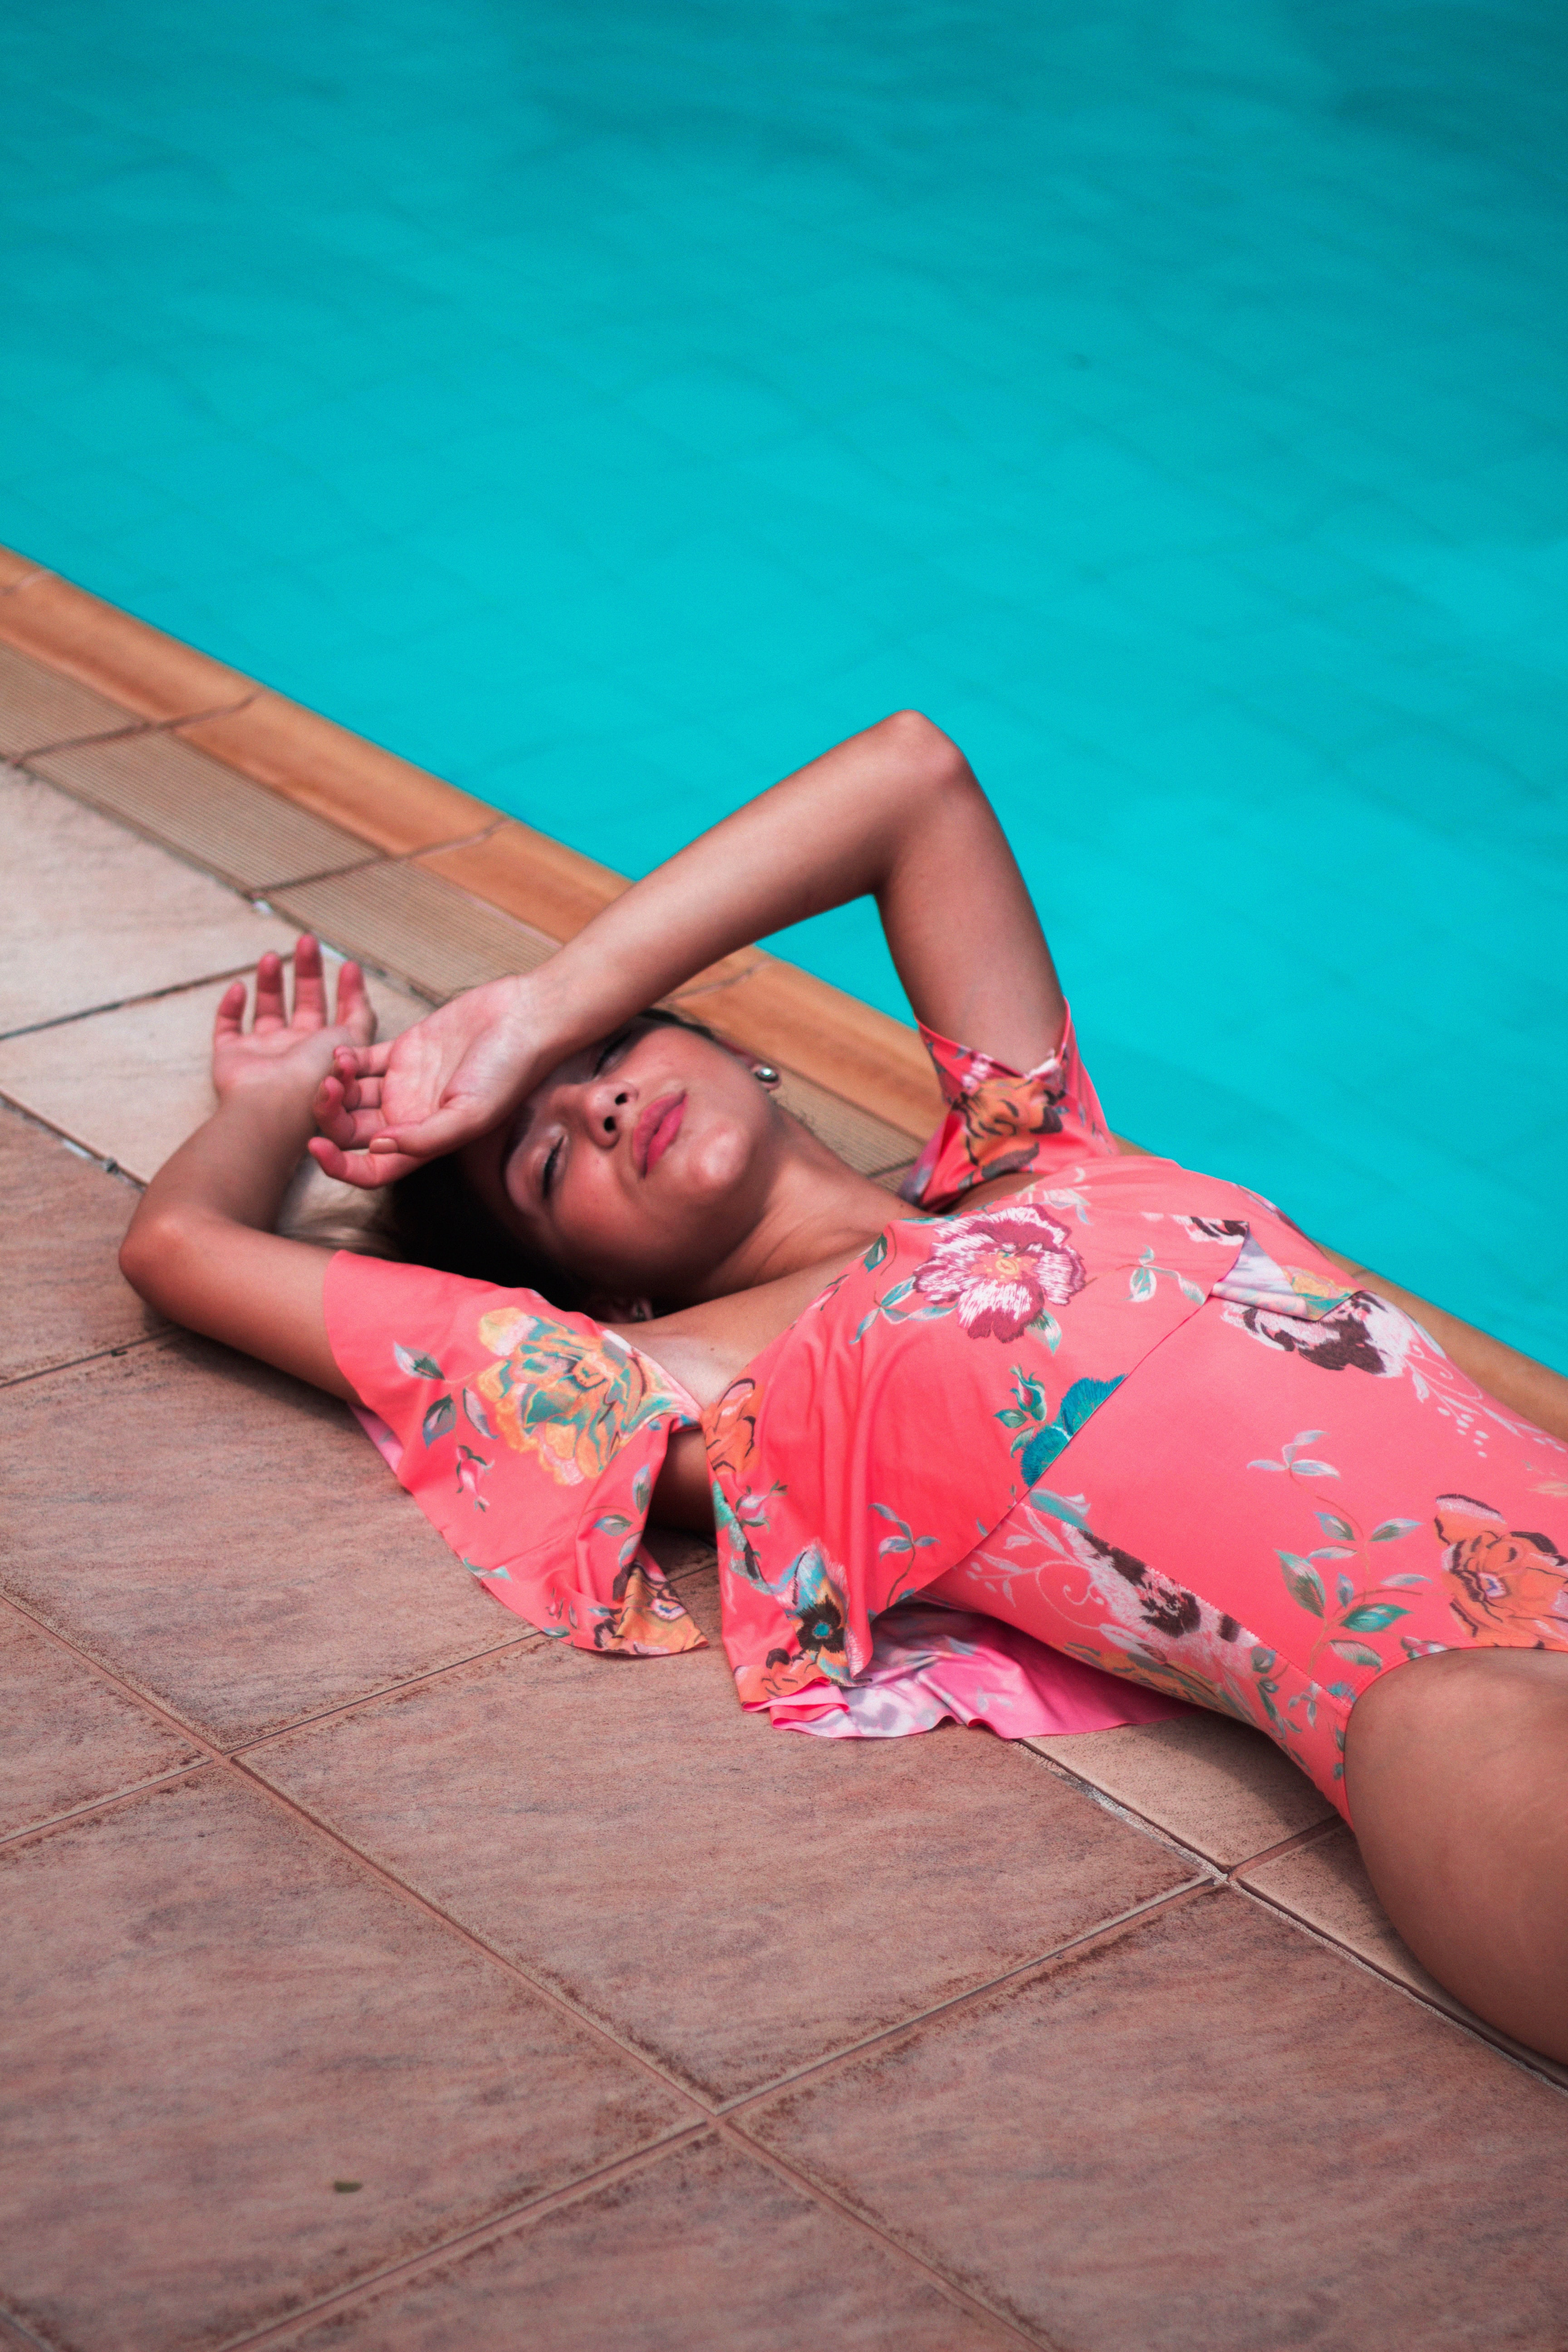 woman wearing pink floral swimsuit laying near gutter of in-ground pool